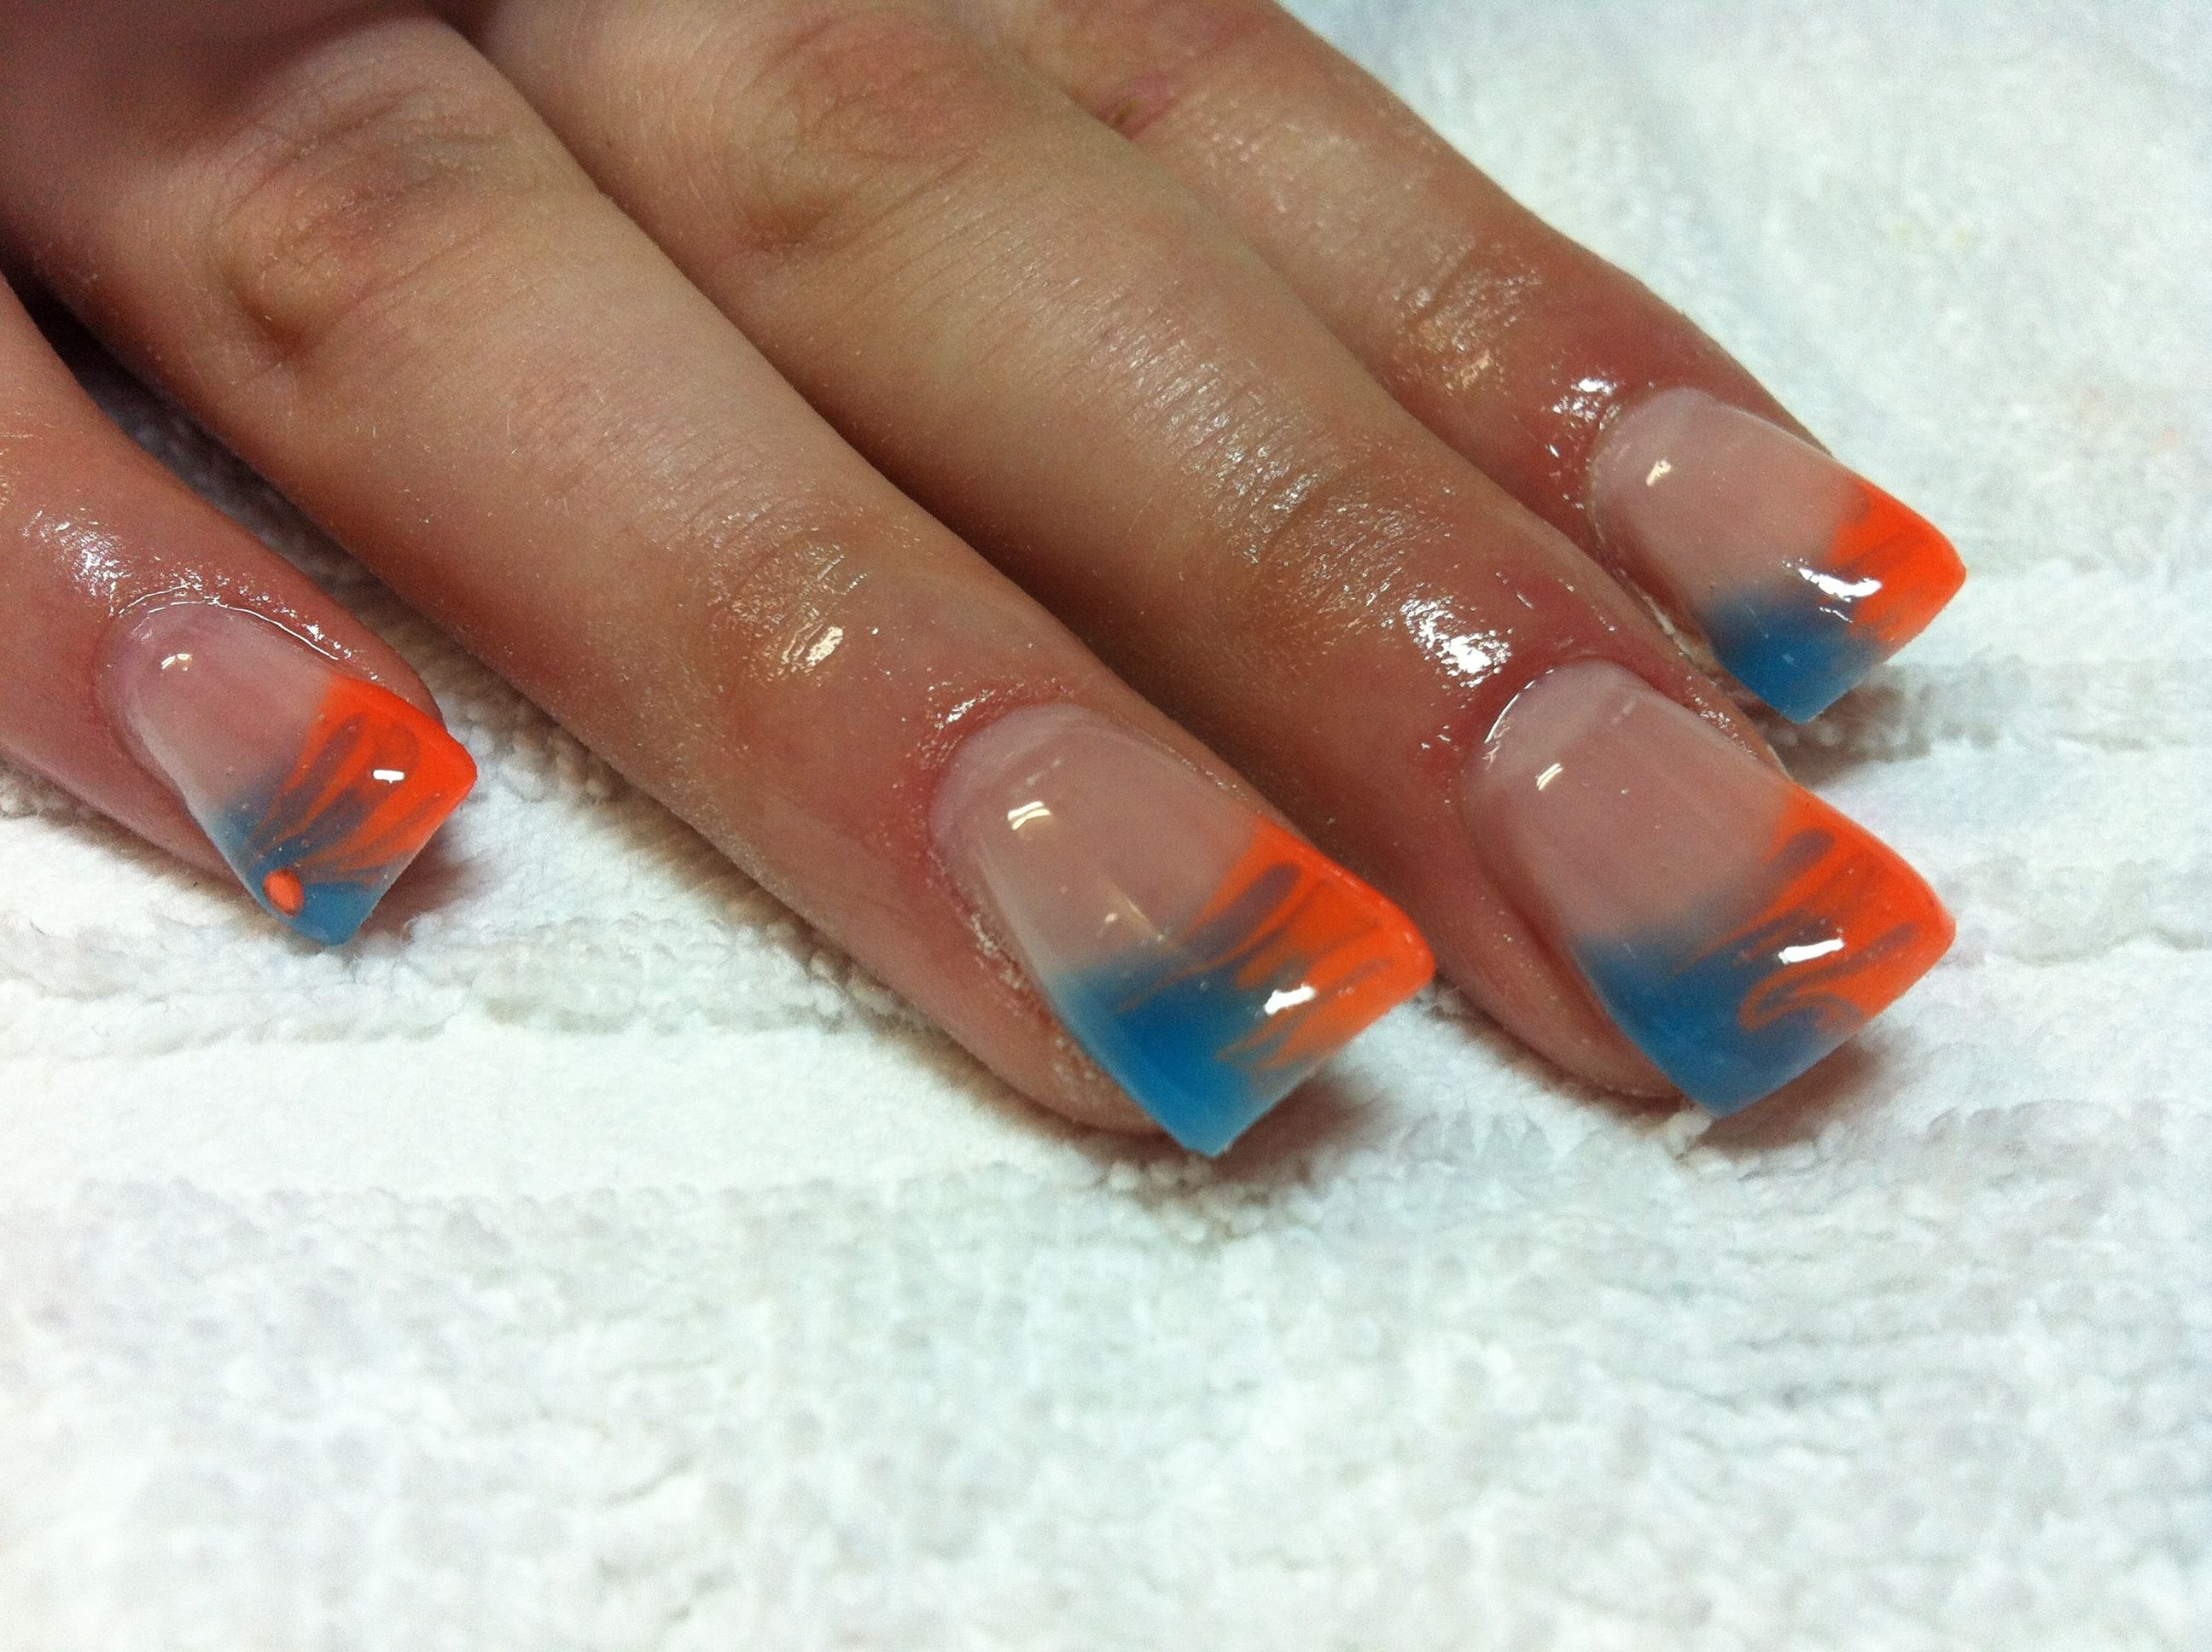 Colored french nail design - Bright Colors Gel Nails Blue Color Gel French Tip Gel Nails Nail Art Nail Design